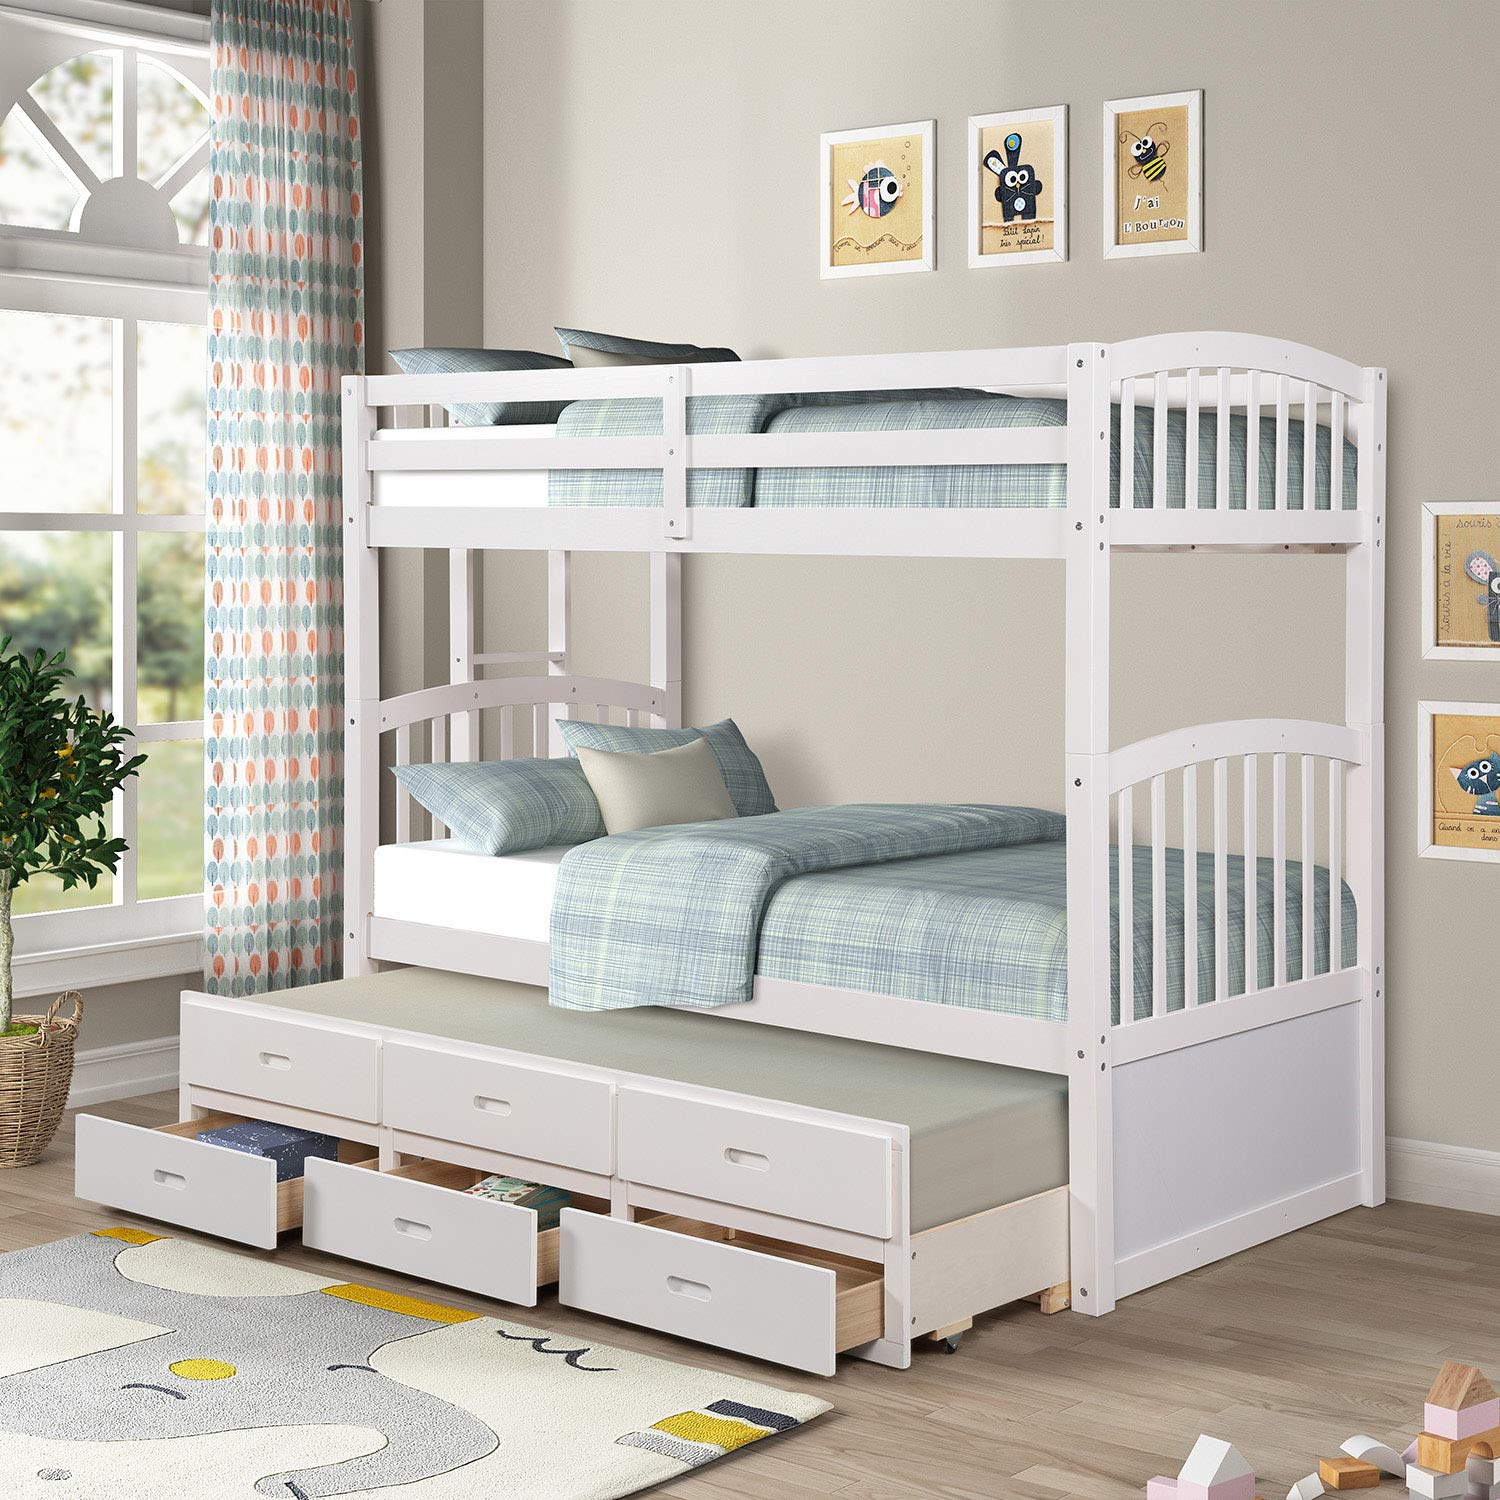 Solid Wood Bunk Beds for Kids, Hardwood Twin Over Twin Bunk Bed Frame with Trundle and Storage Drawers,White